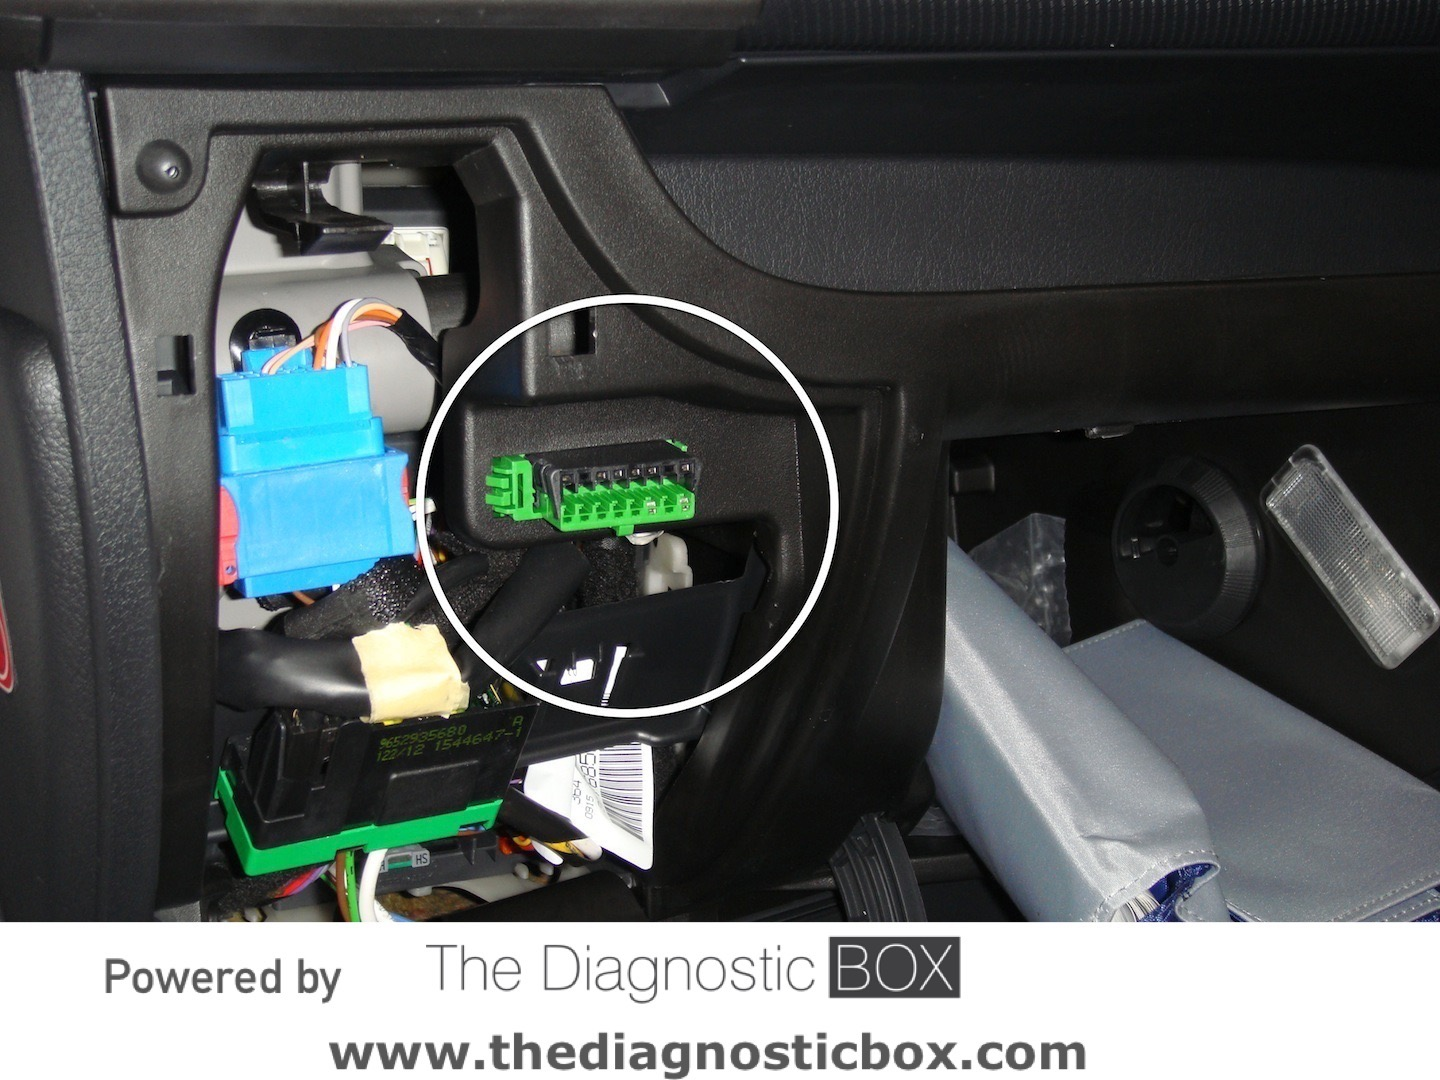 Peugeot 508 moreover Peugeot 207 also Peugeot 5008 moreover Peugeot Bipper also 484480 Peugeot 207 Obd Location Cadillac. on obd2 connector location in peugeot partner outils obd facile